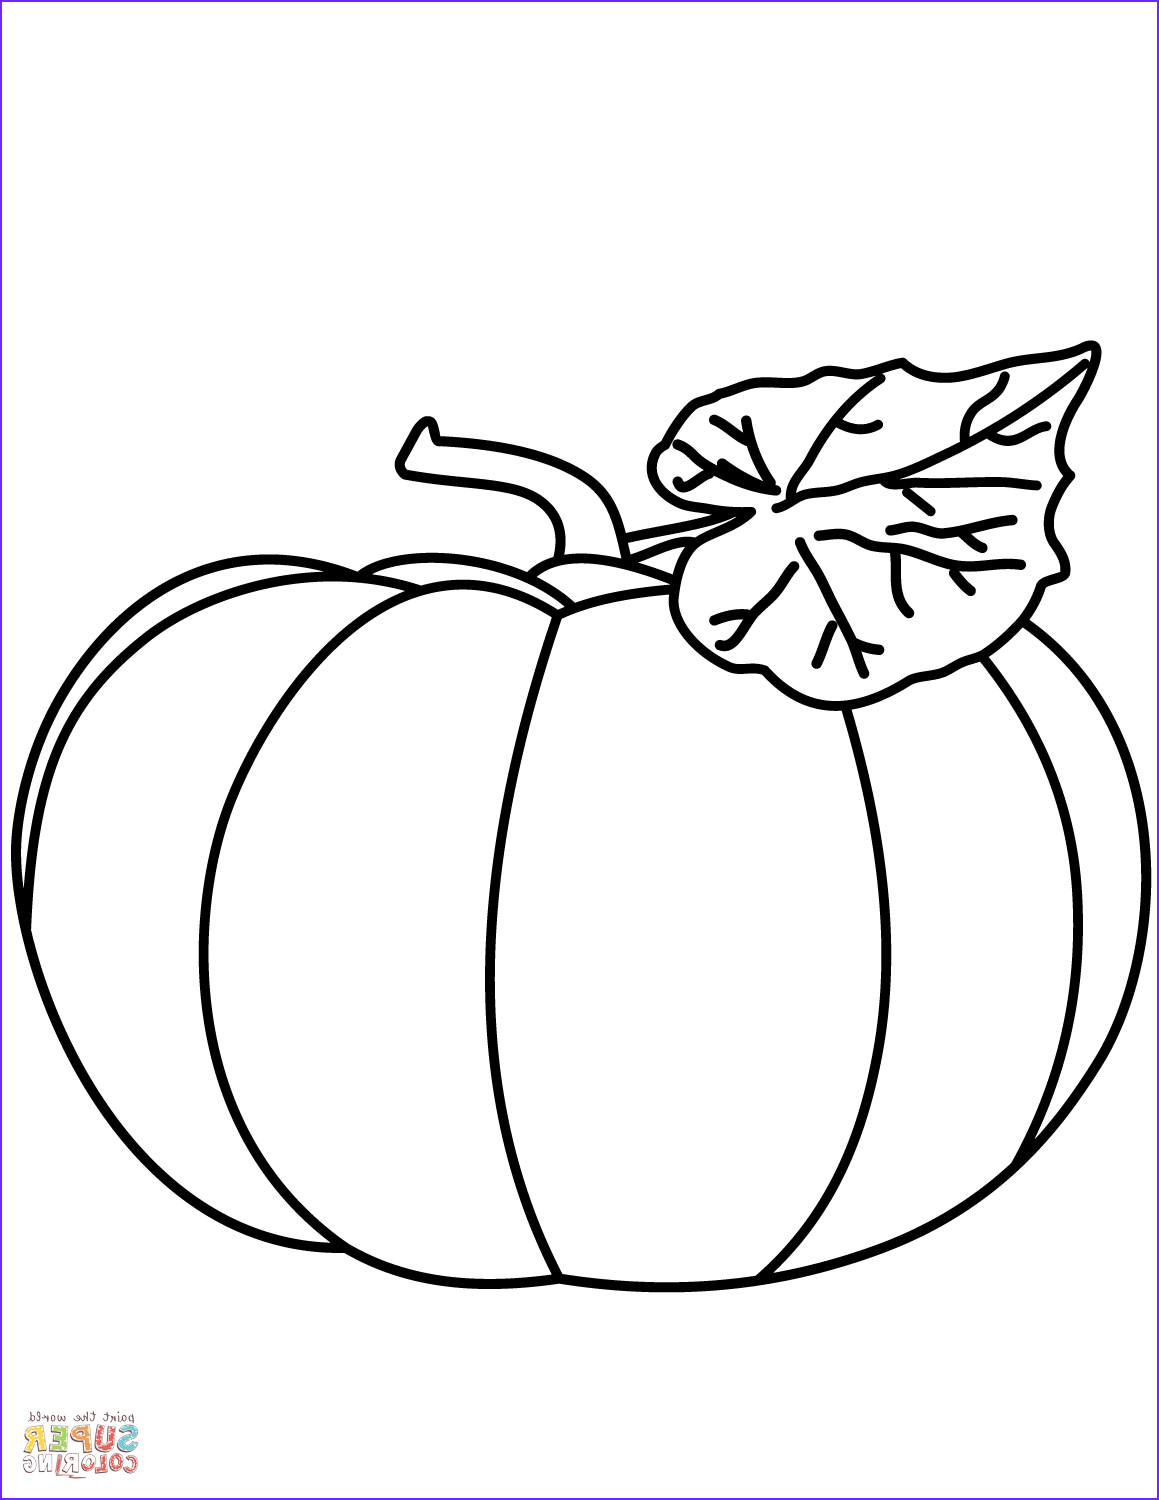 Pumpkin Coloring Pages Luxury Images Pumpkin Coloring Page